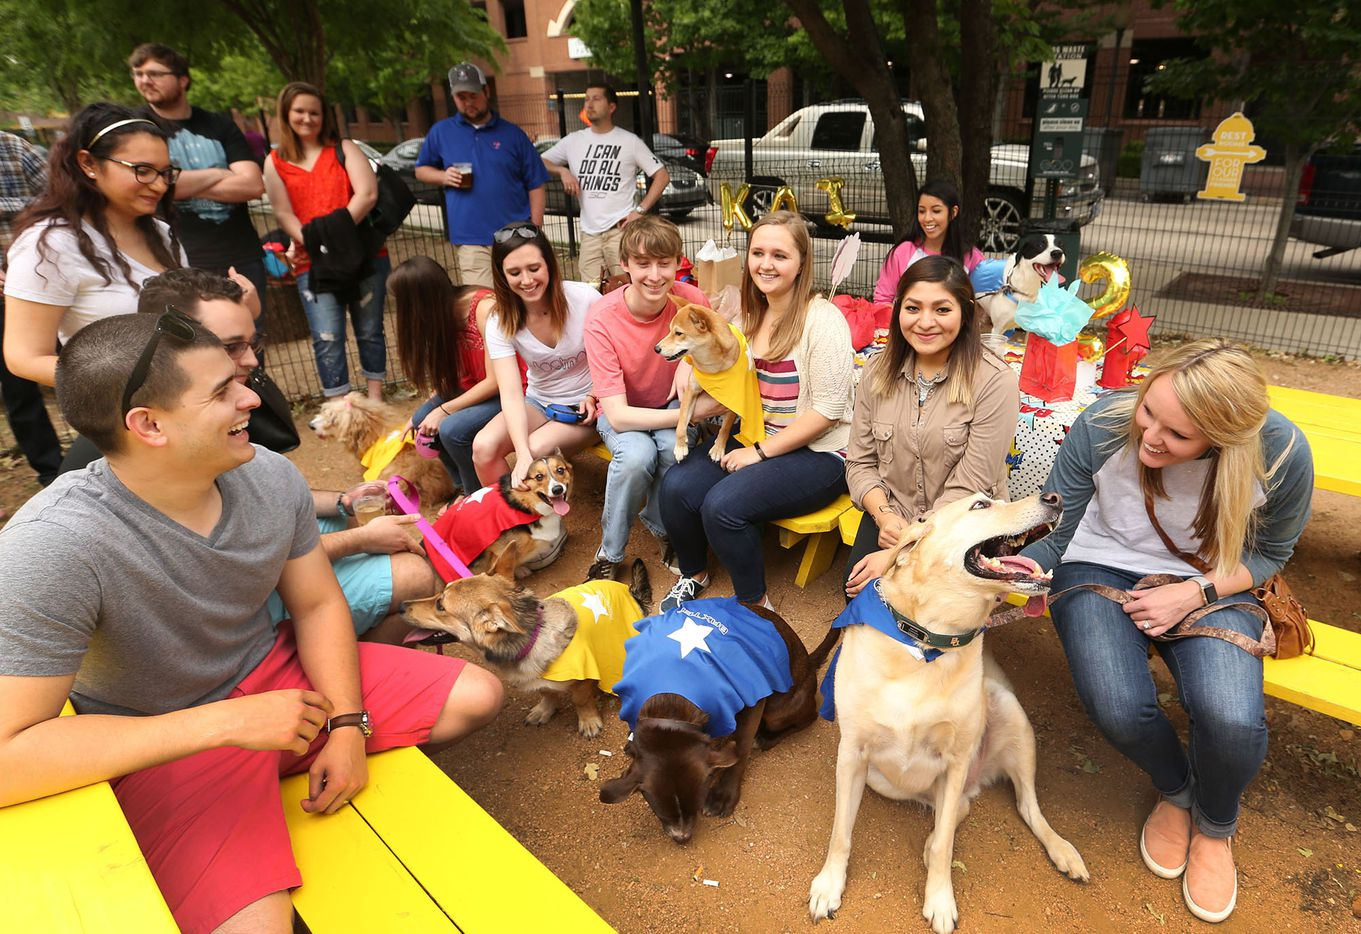 The atmosphere is festive at a dog's birthday party held at Mutts Canine Cantina in Uptown just outside of downtown Dallas, photographed on Saturday, April 1, 2017.